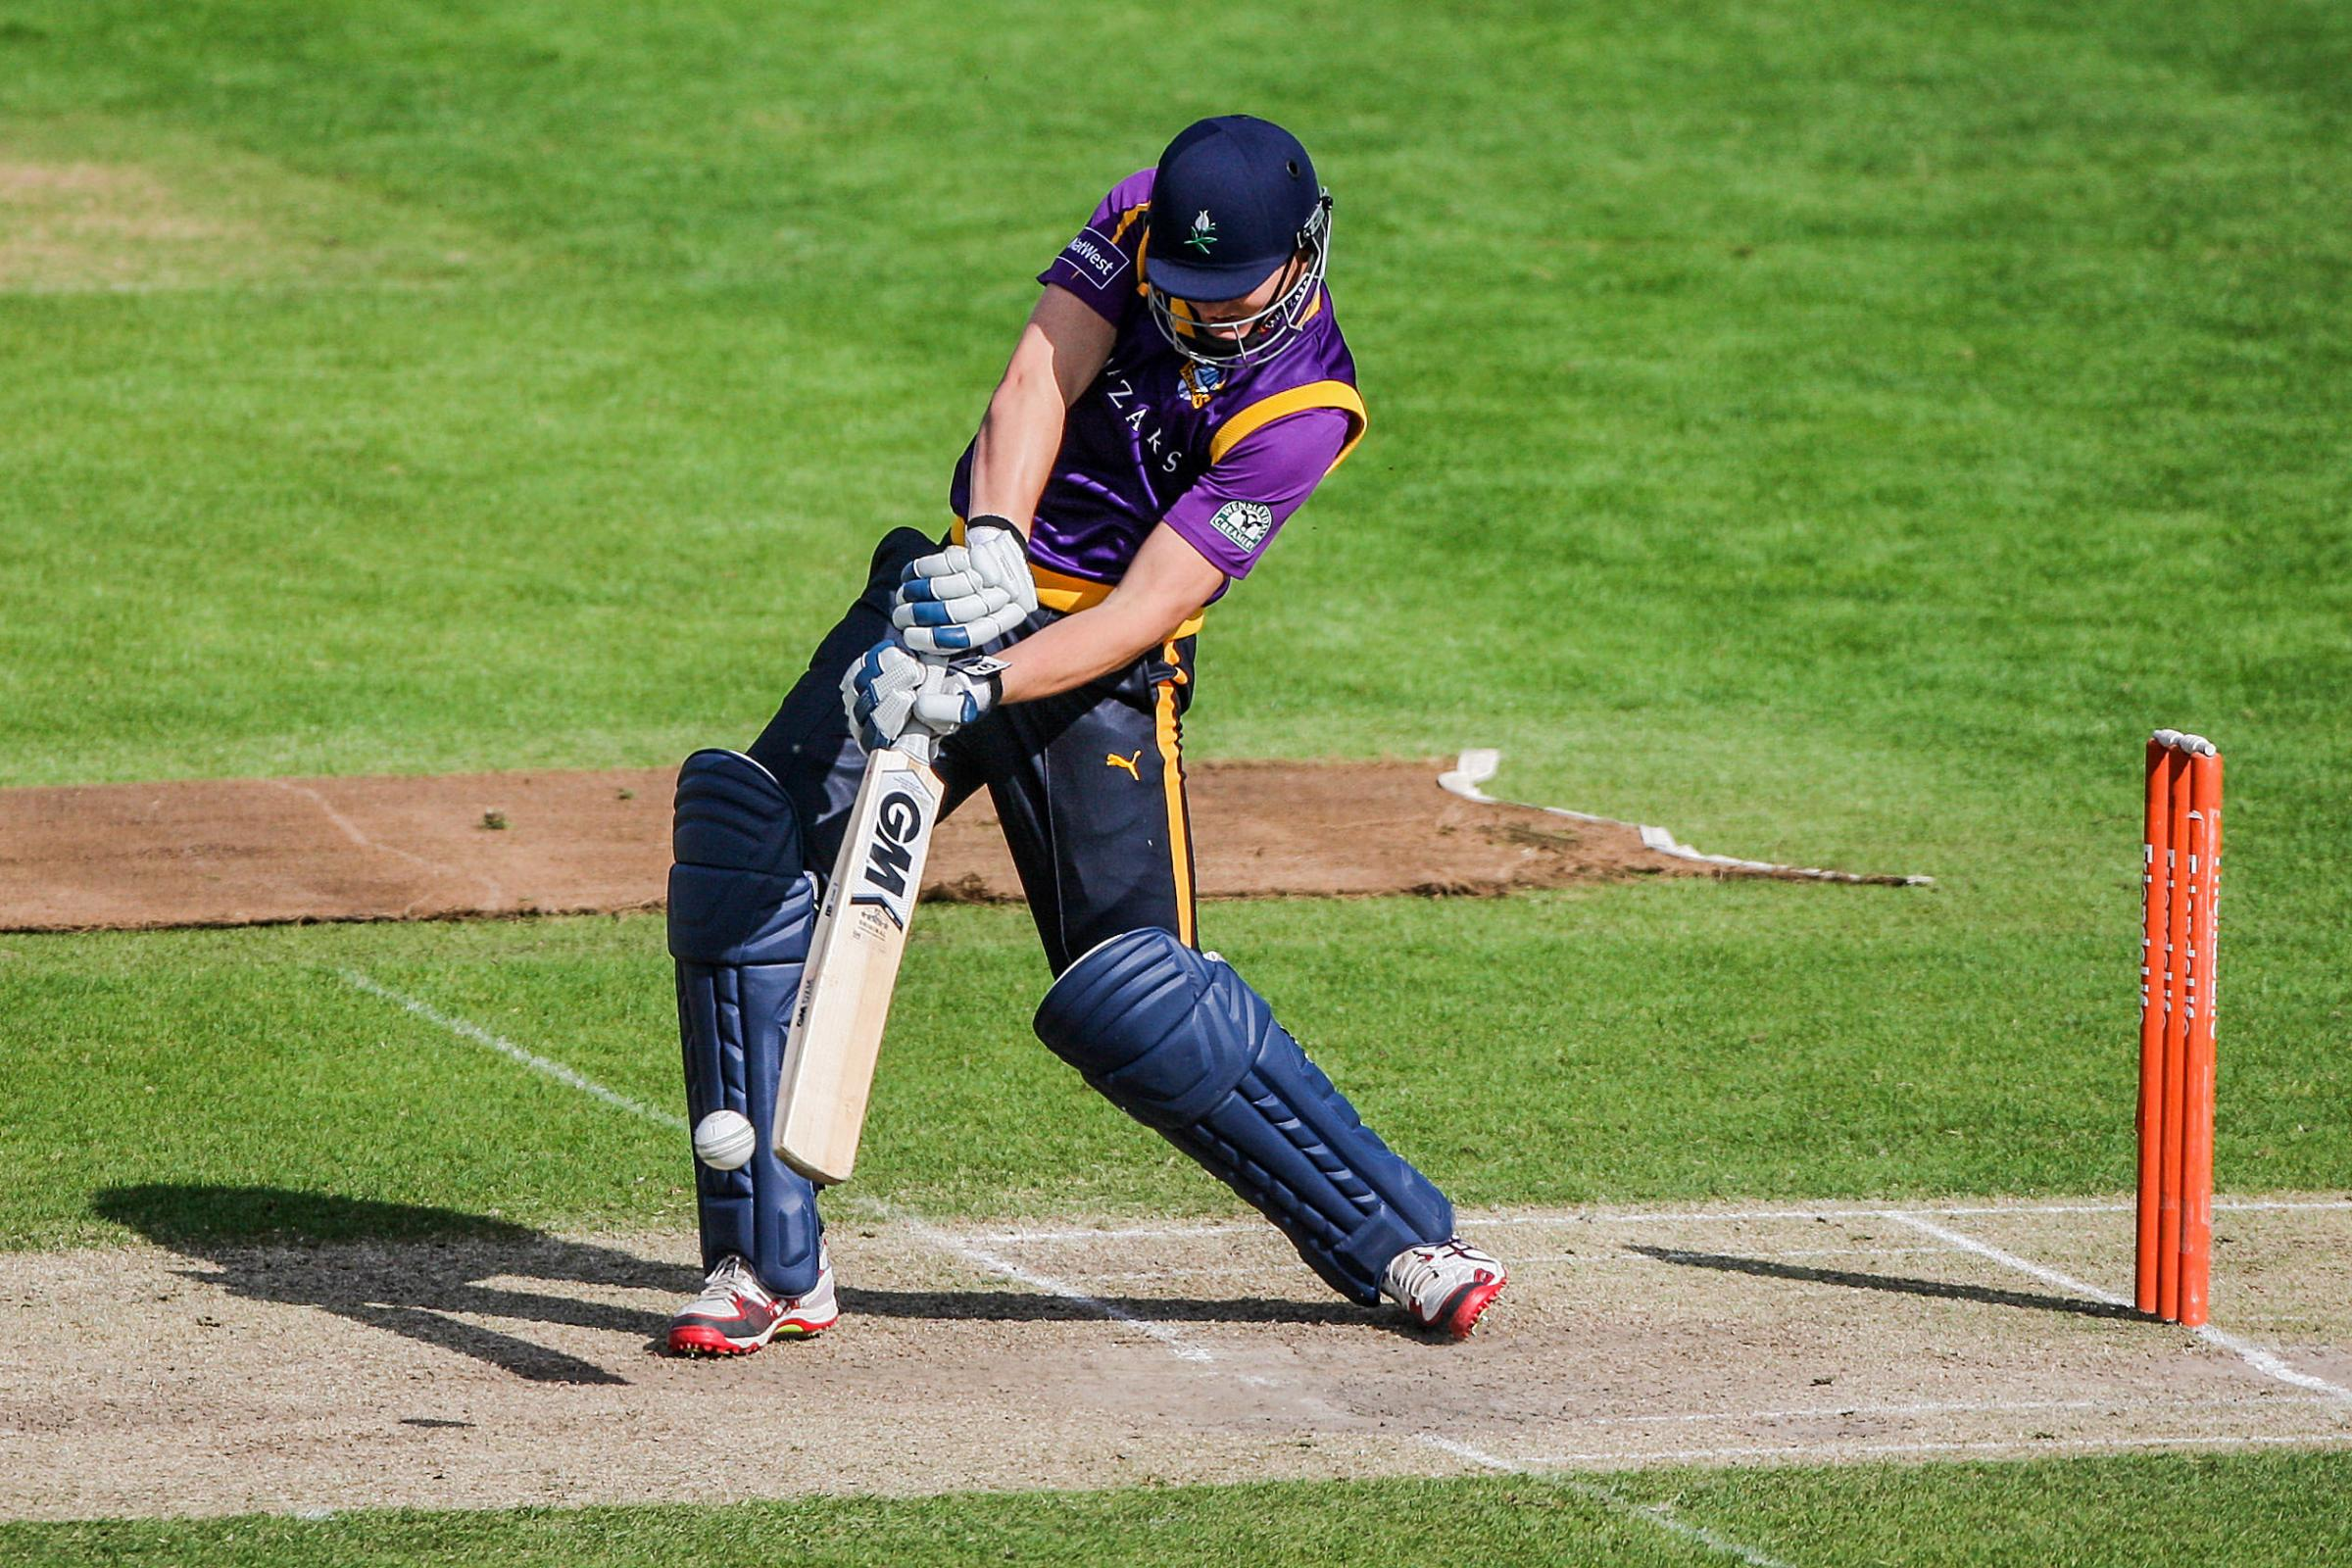 Alex Lees smashed a stunning century as Yorkshire Vikings trounced Northamptonshire in the Royal London One-day CupP